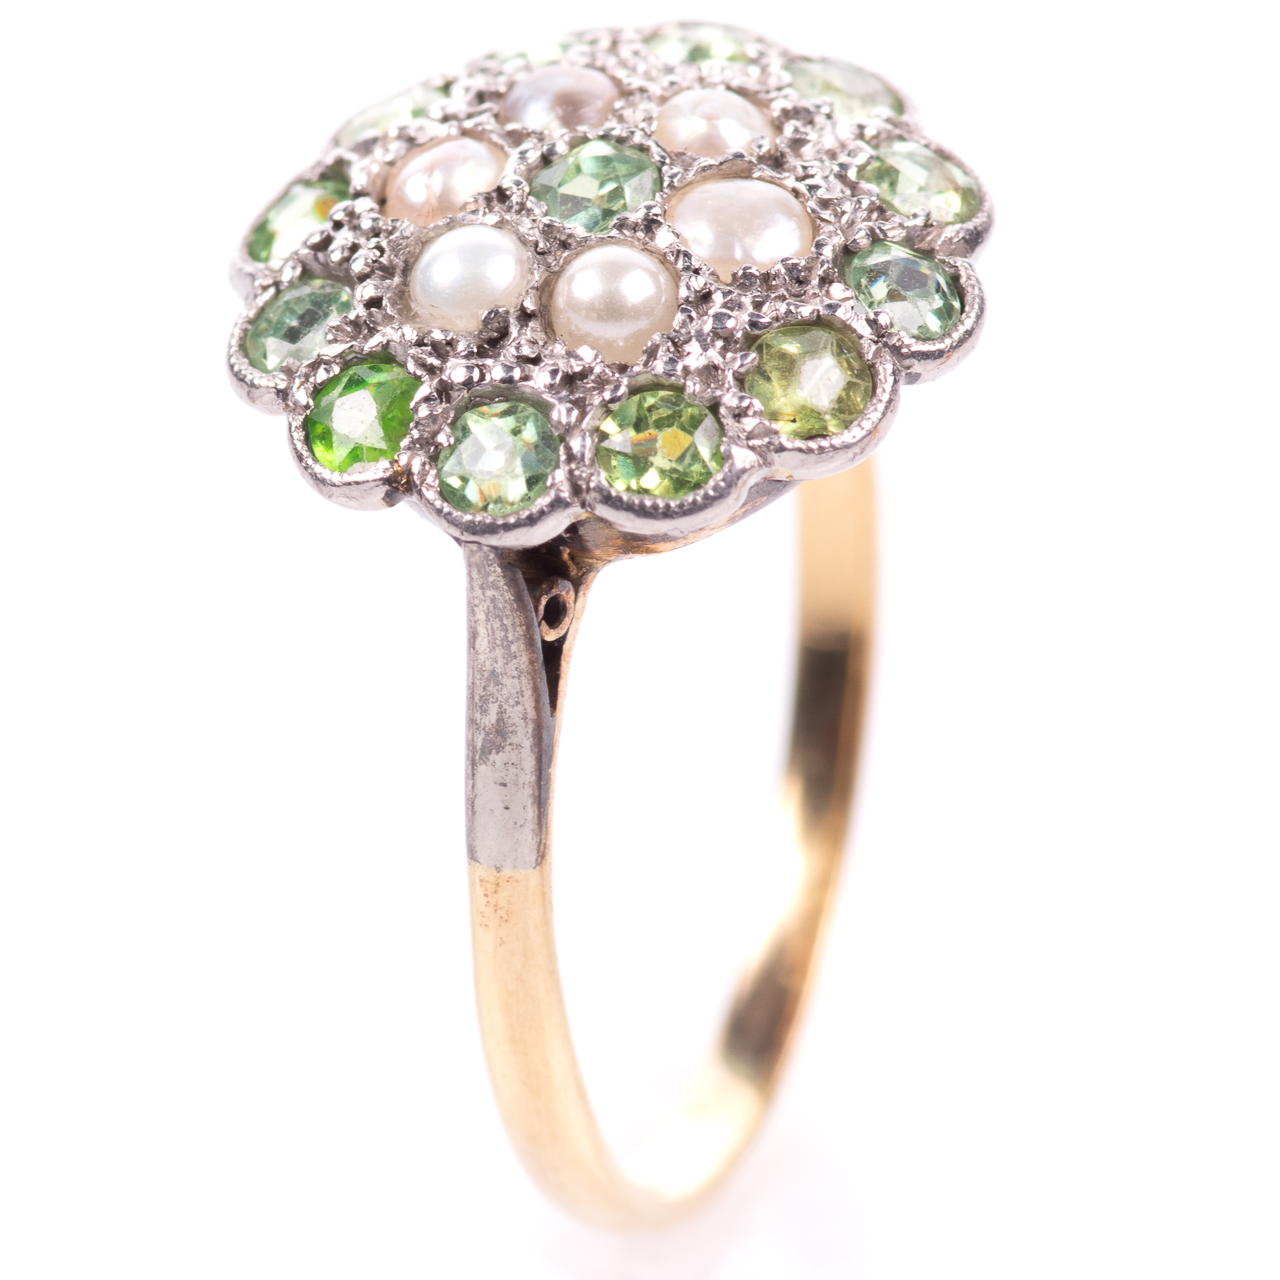 18ct Gold Victorian Peridot & Pearl Cluster Ring - Image 3 of 8